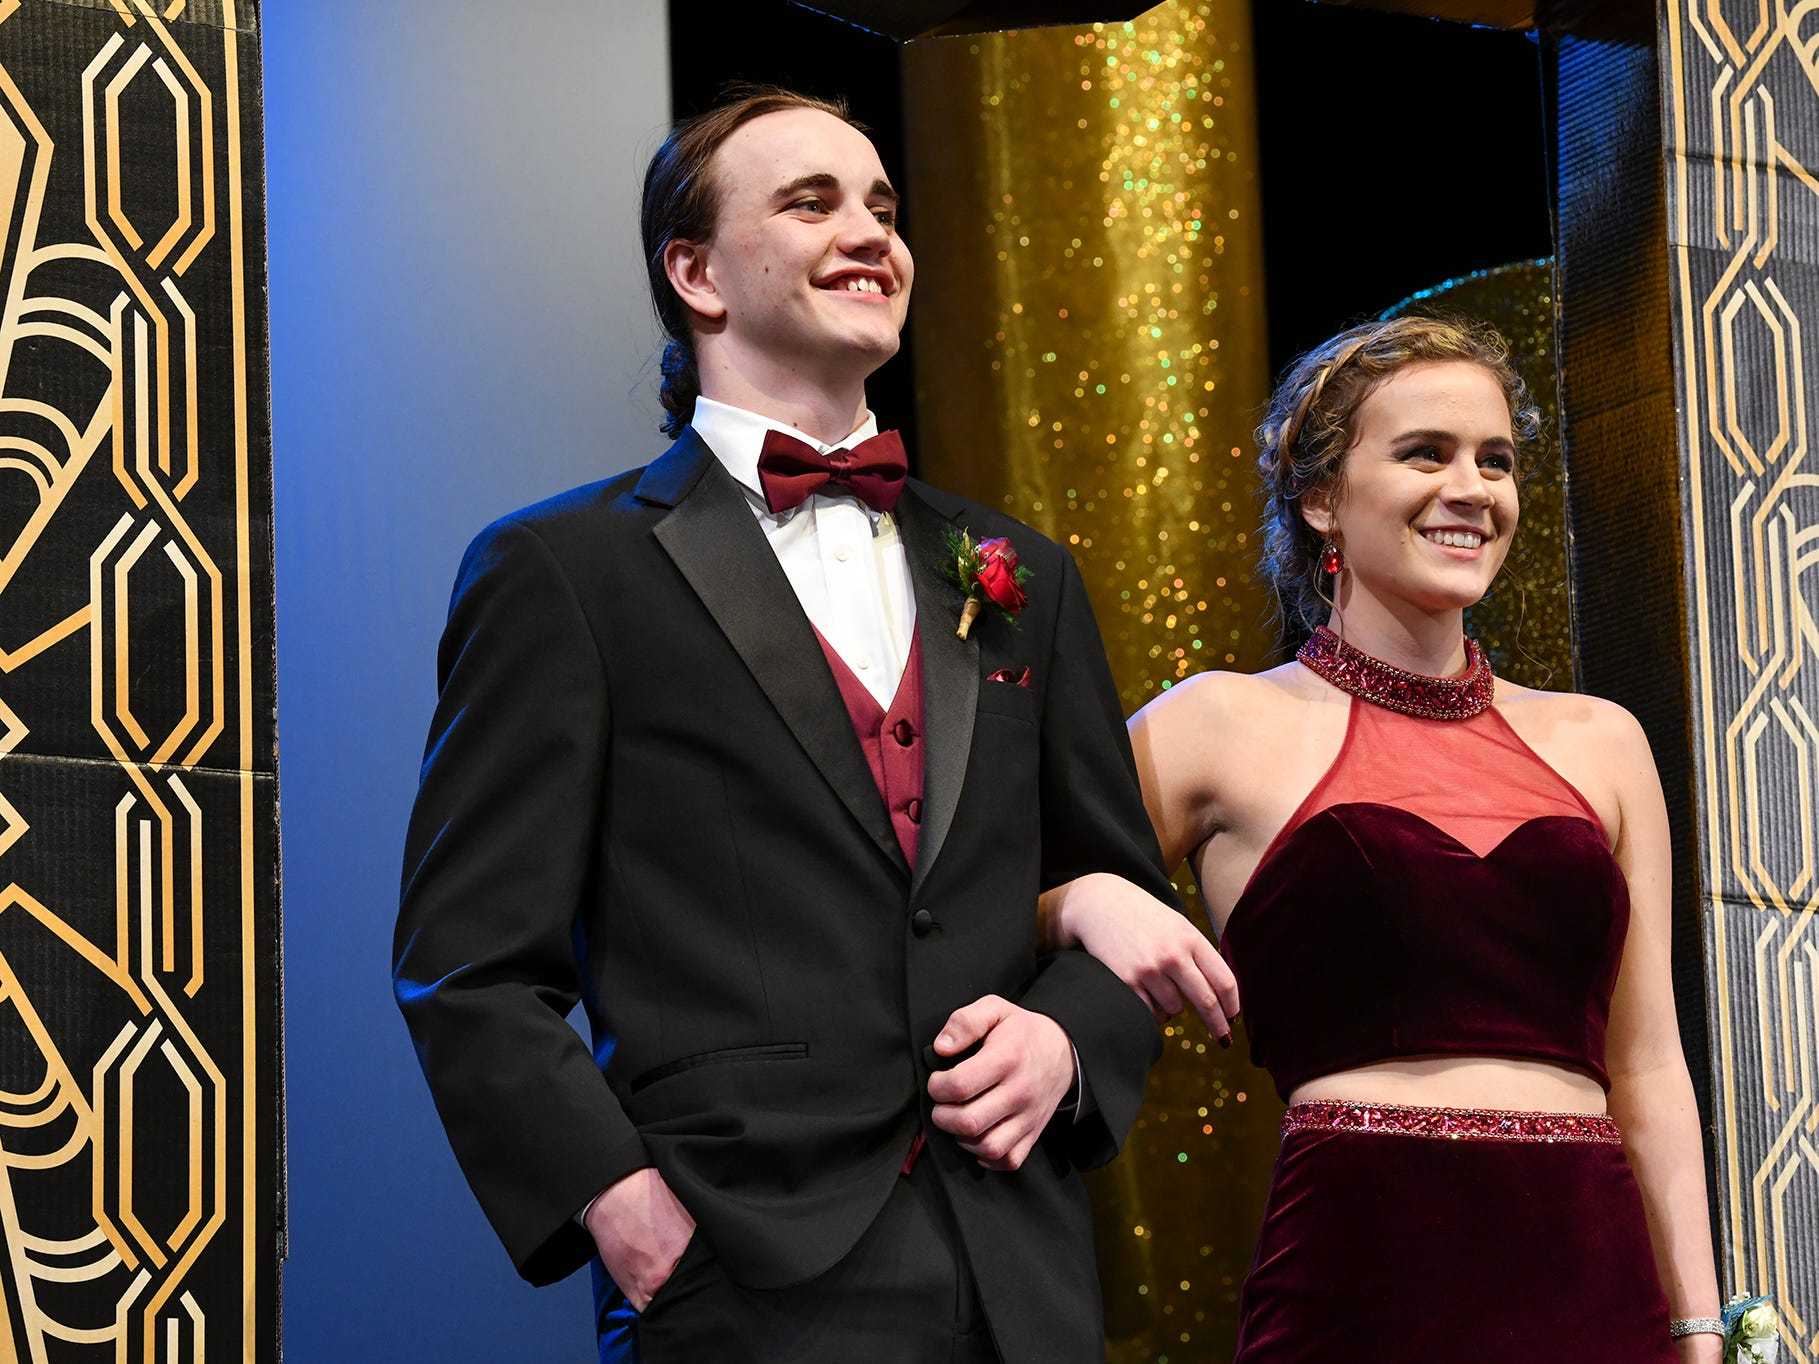 Kendra Bromenschenkel and Steven Davis smile during prom grand march Saturday, April 6, at Albany High School.